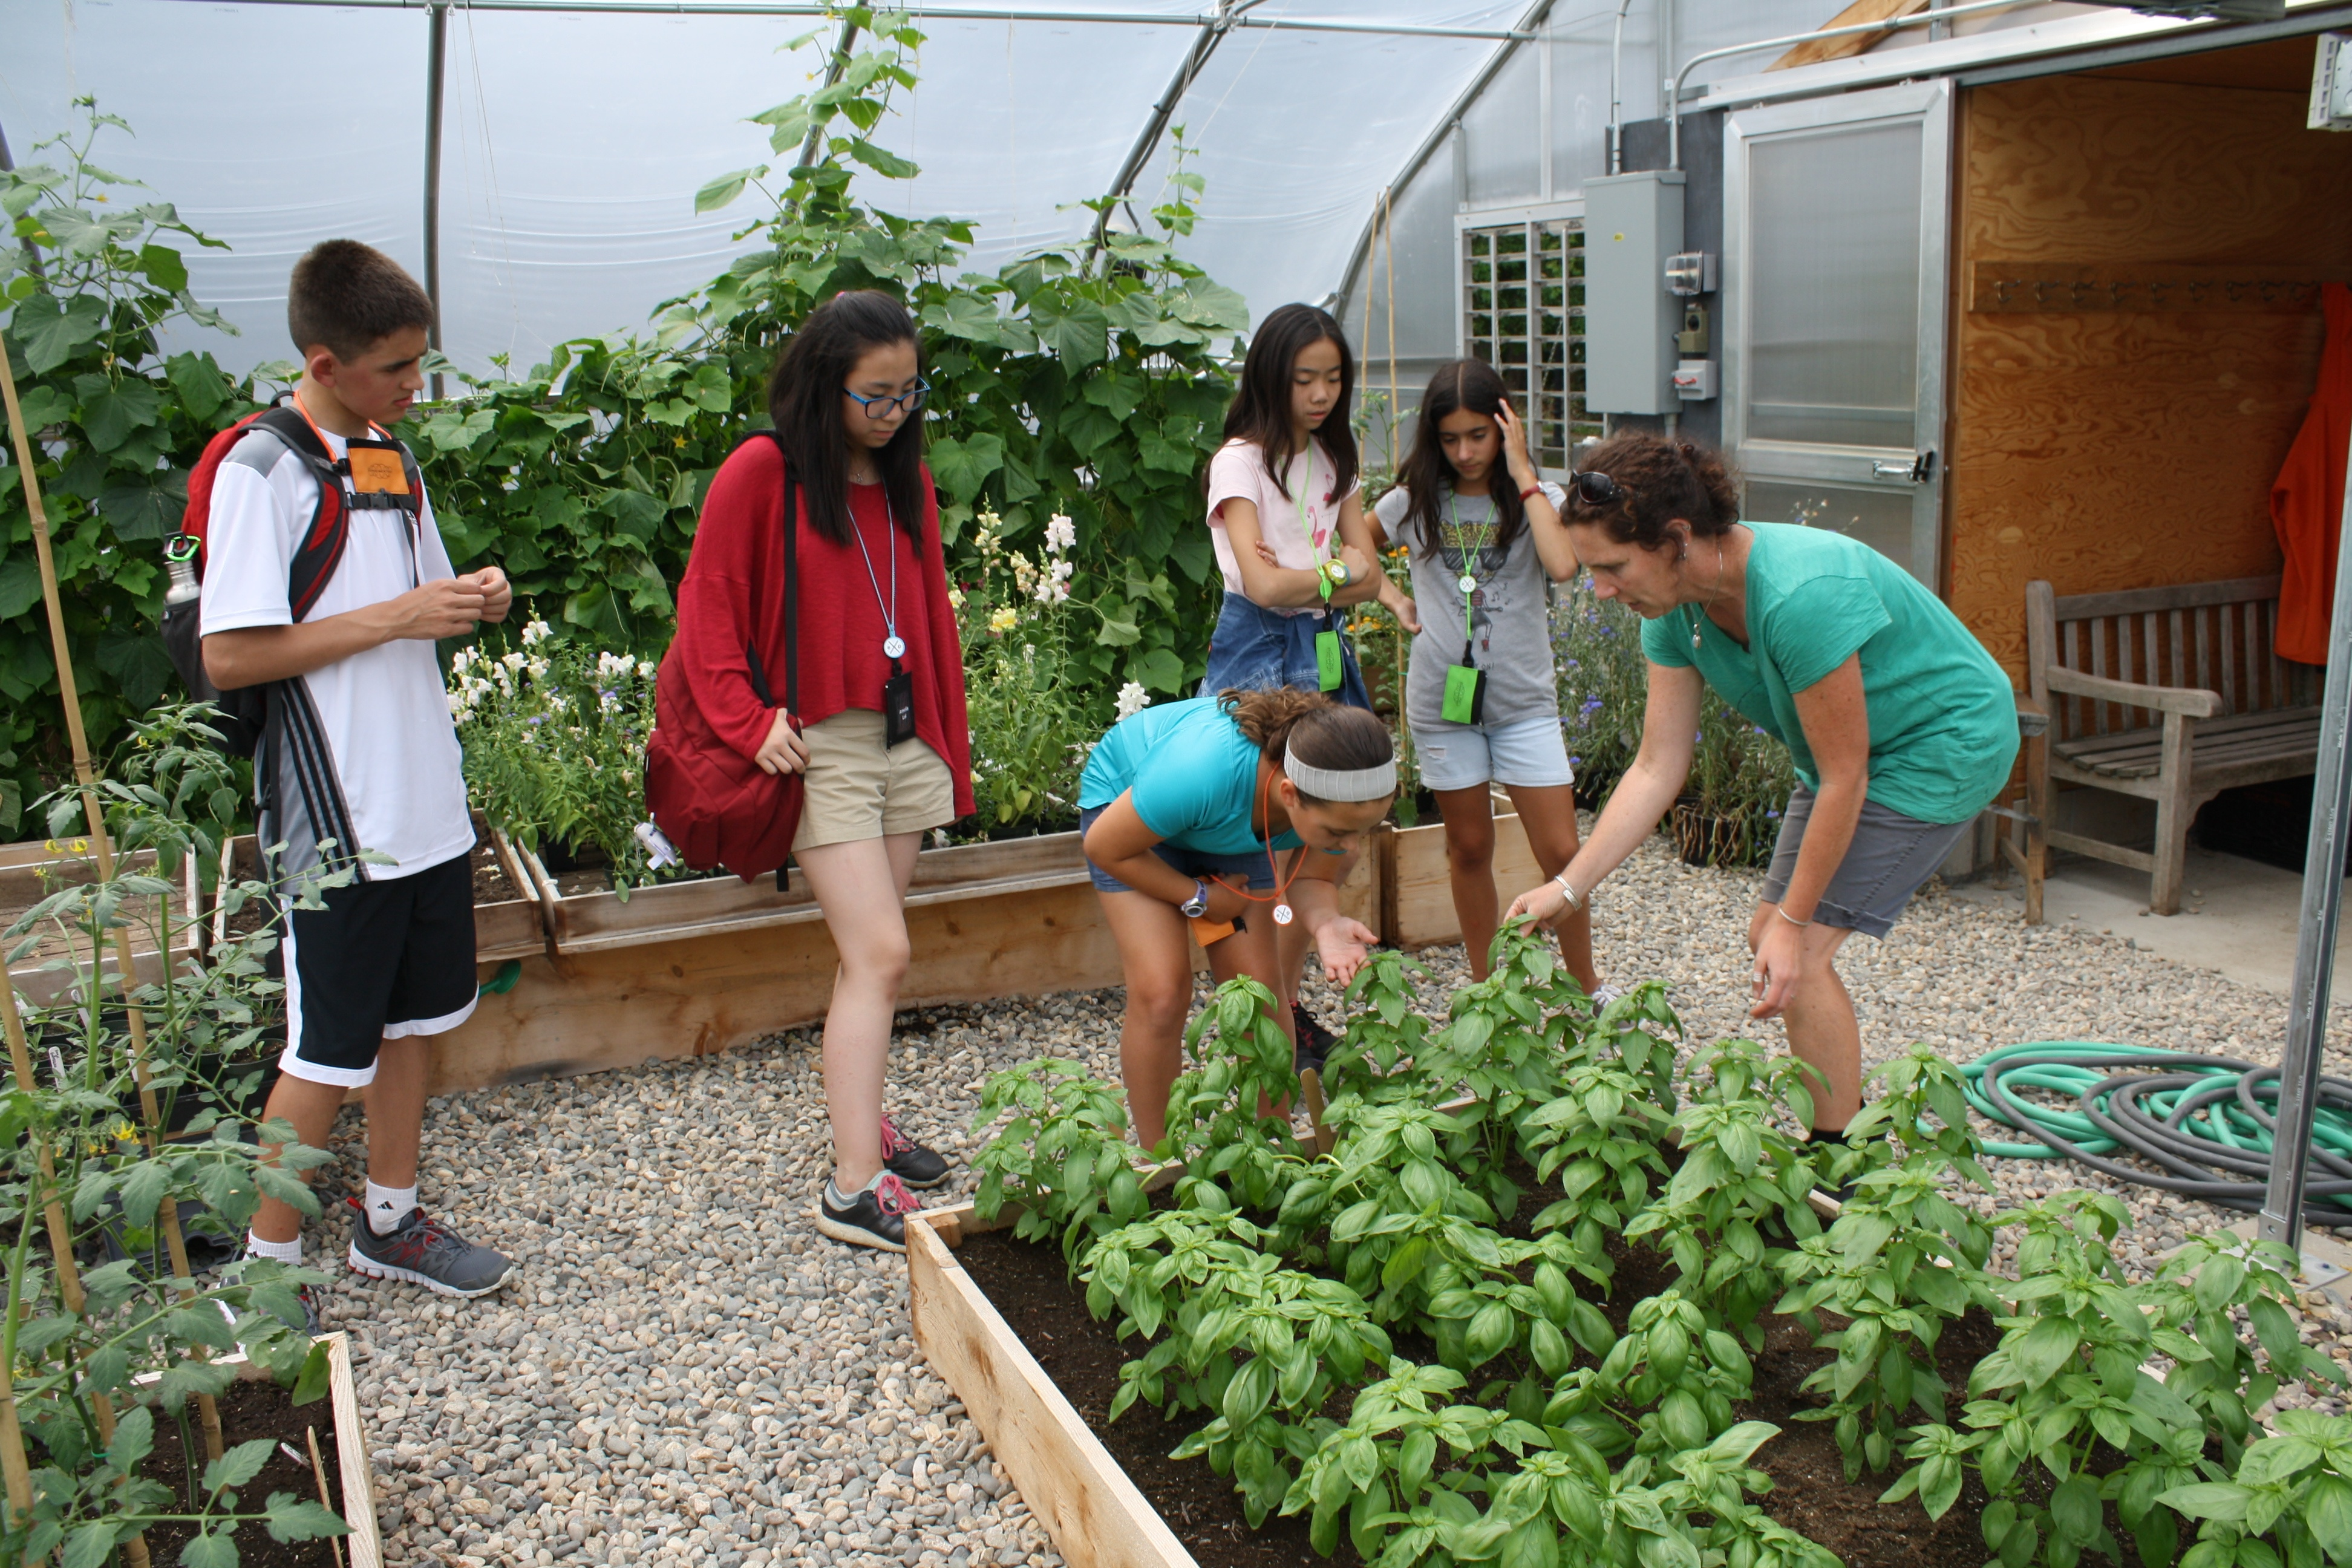 Bella crouches down to observe pepper plants in the Academy Greenhouse.